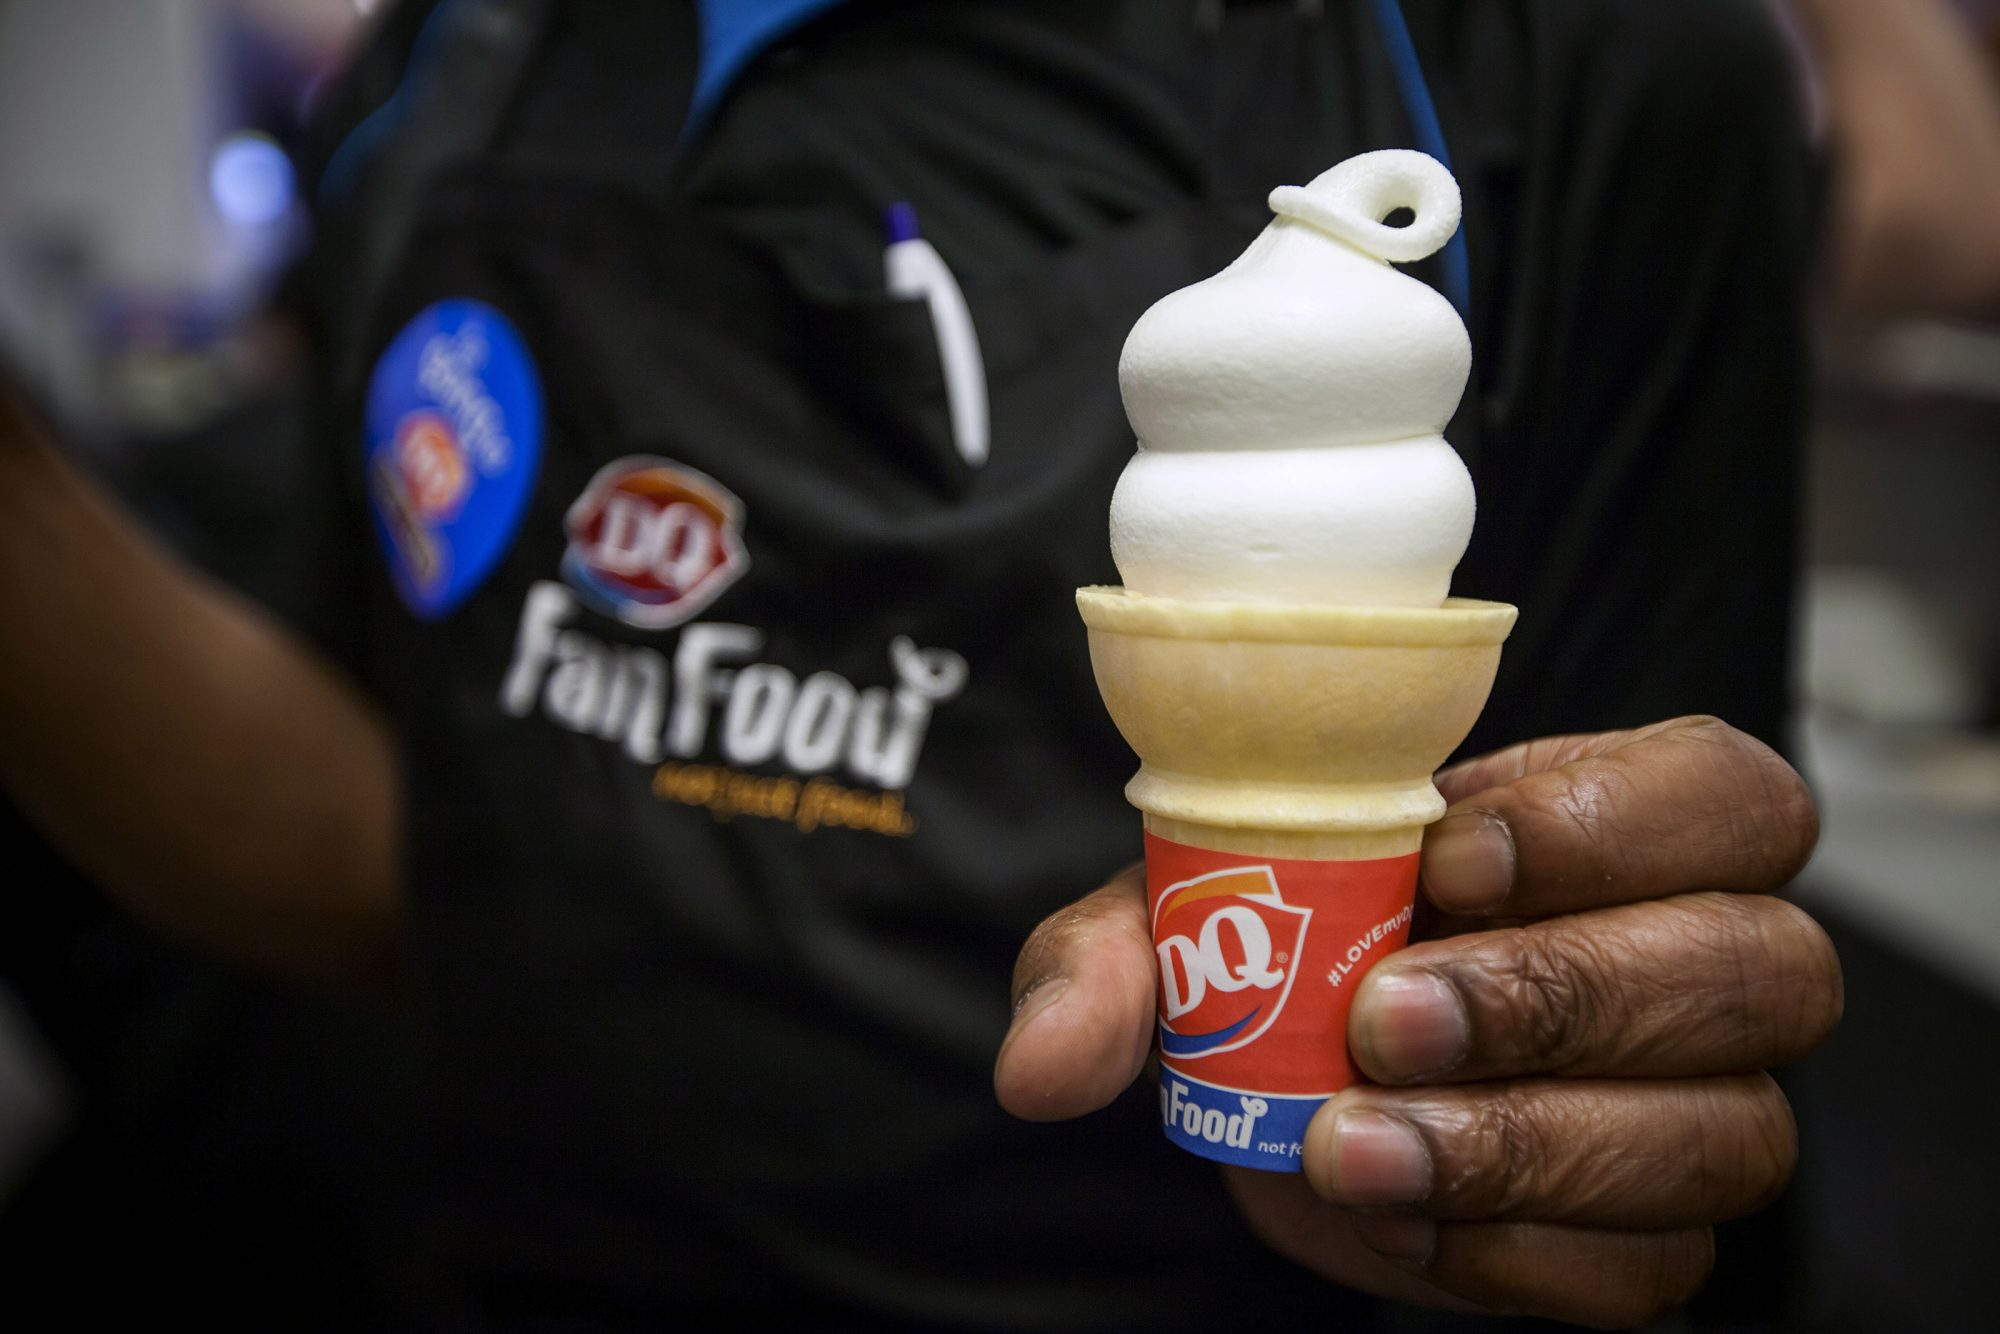 Inside Manhattan's First Dairy Queen Location Ahead of the Grand Opening